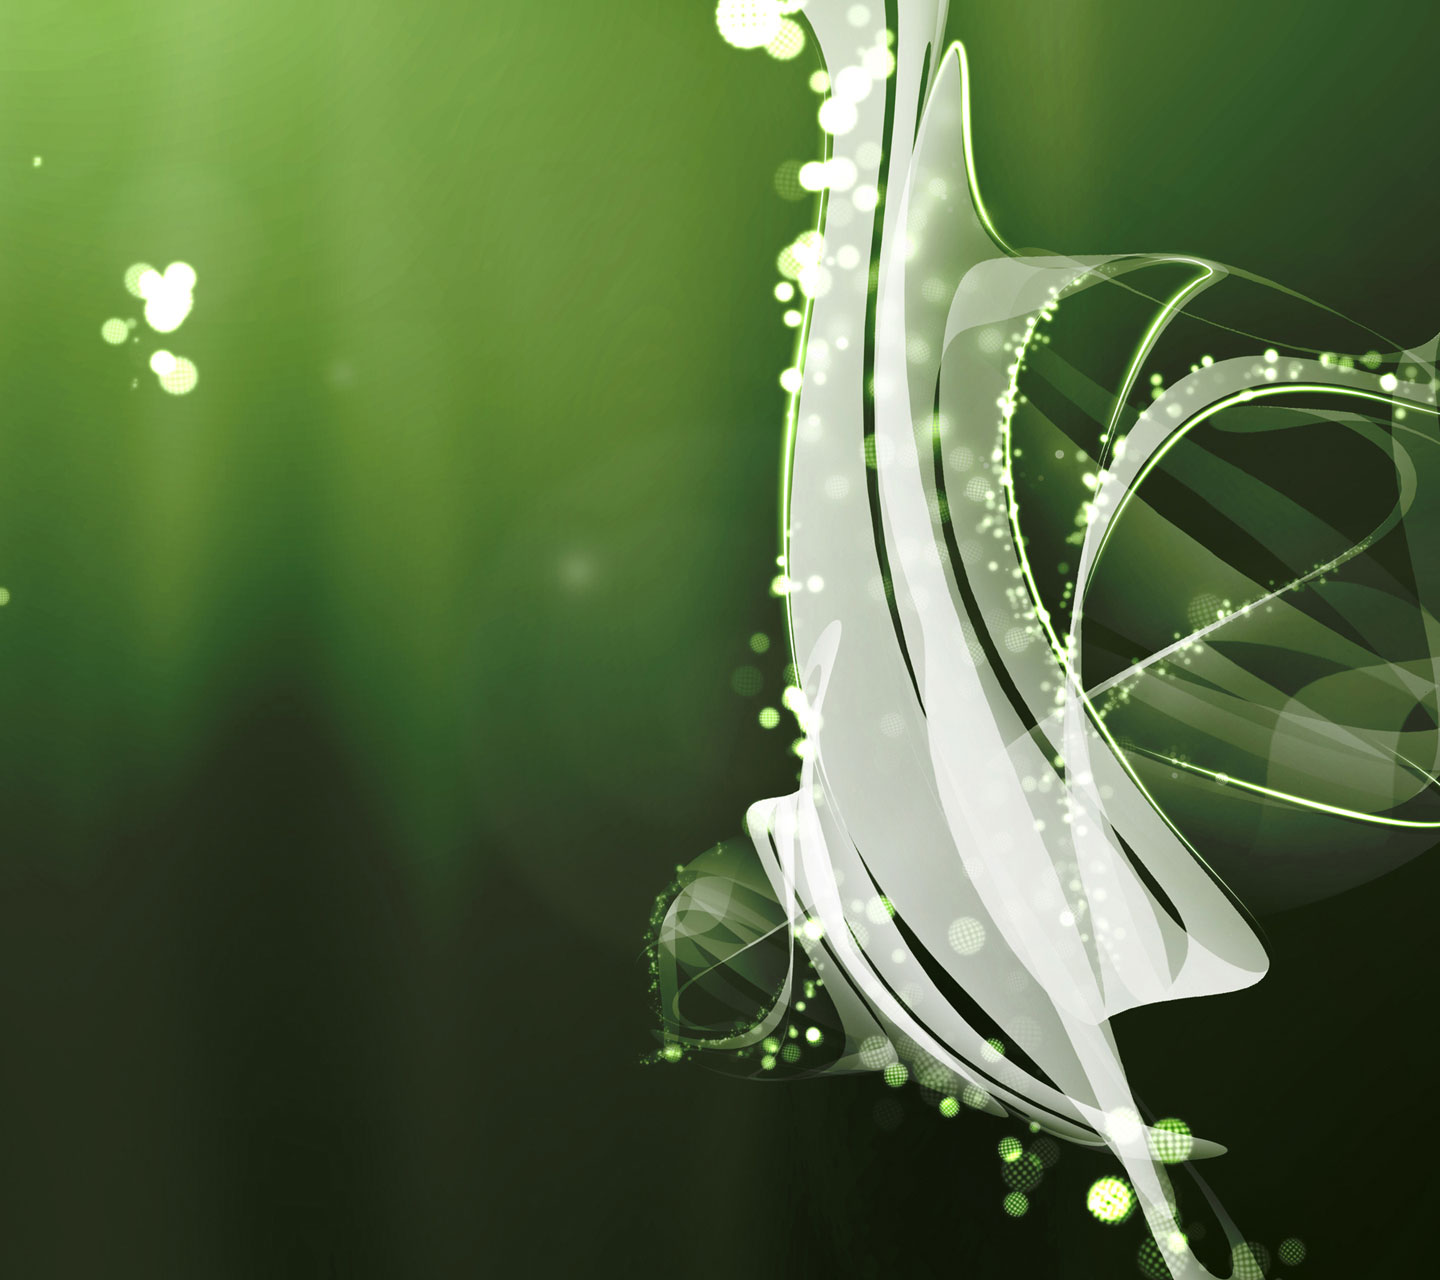 Galaxy S3 Wallpaper - Abstract Green - HD Wallpapers - 9to5Wallpapers